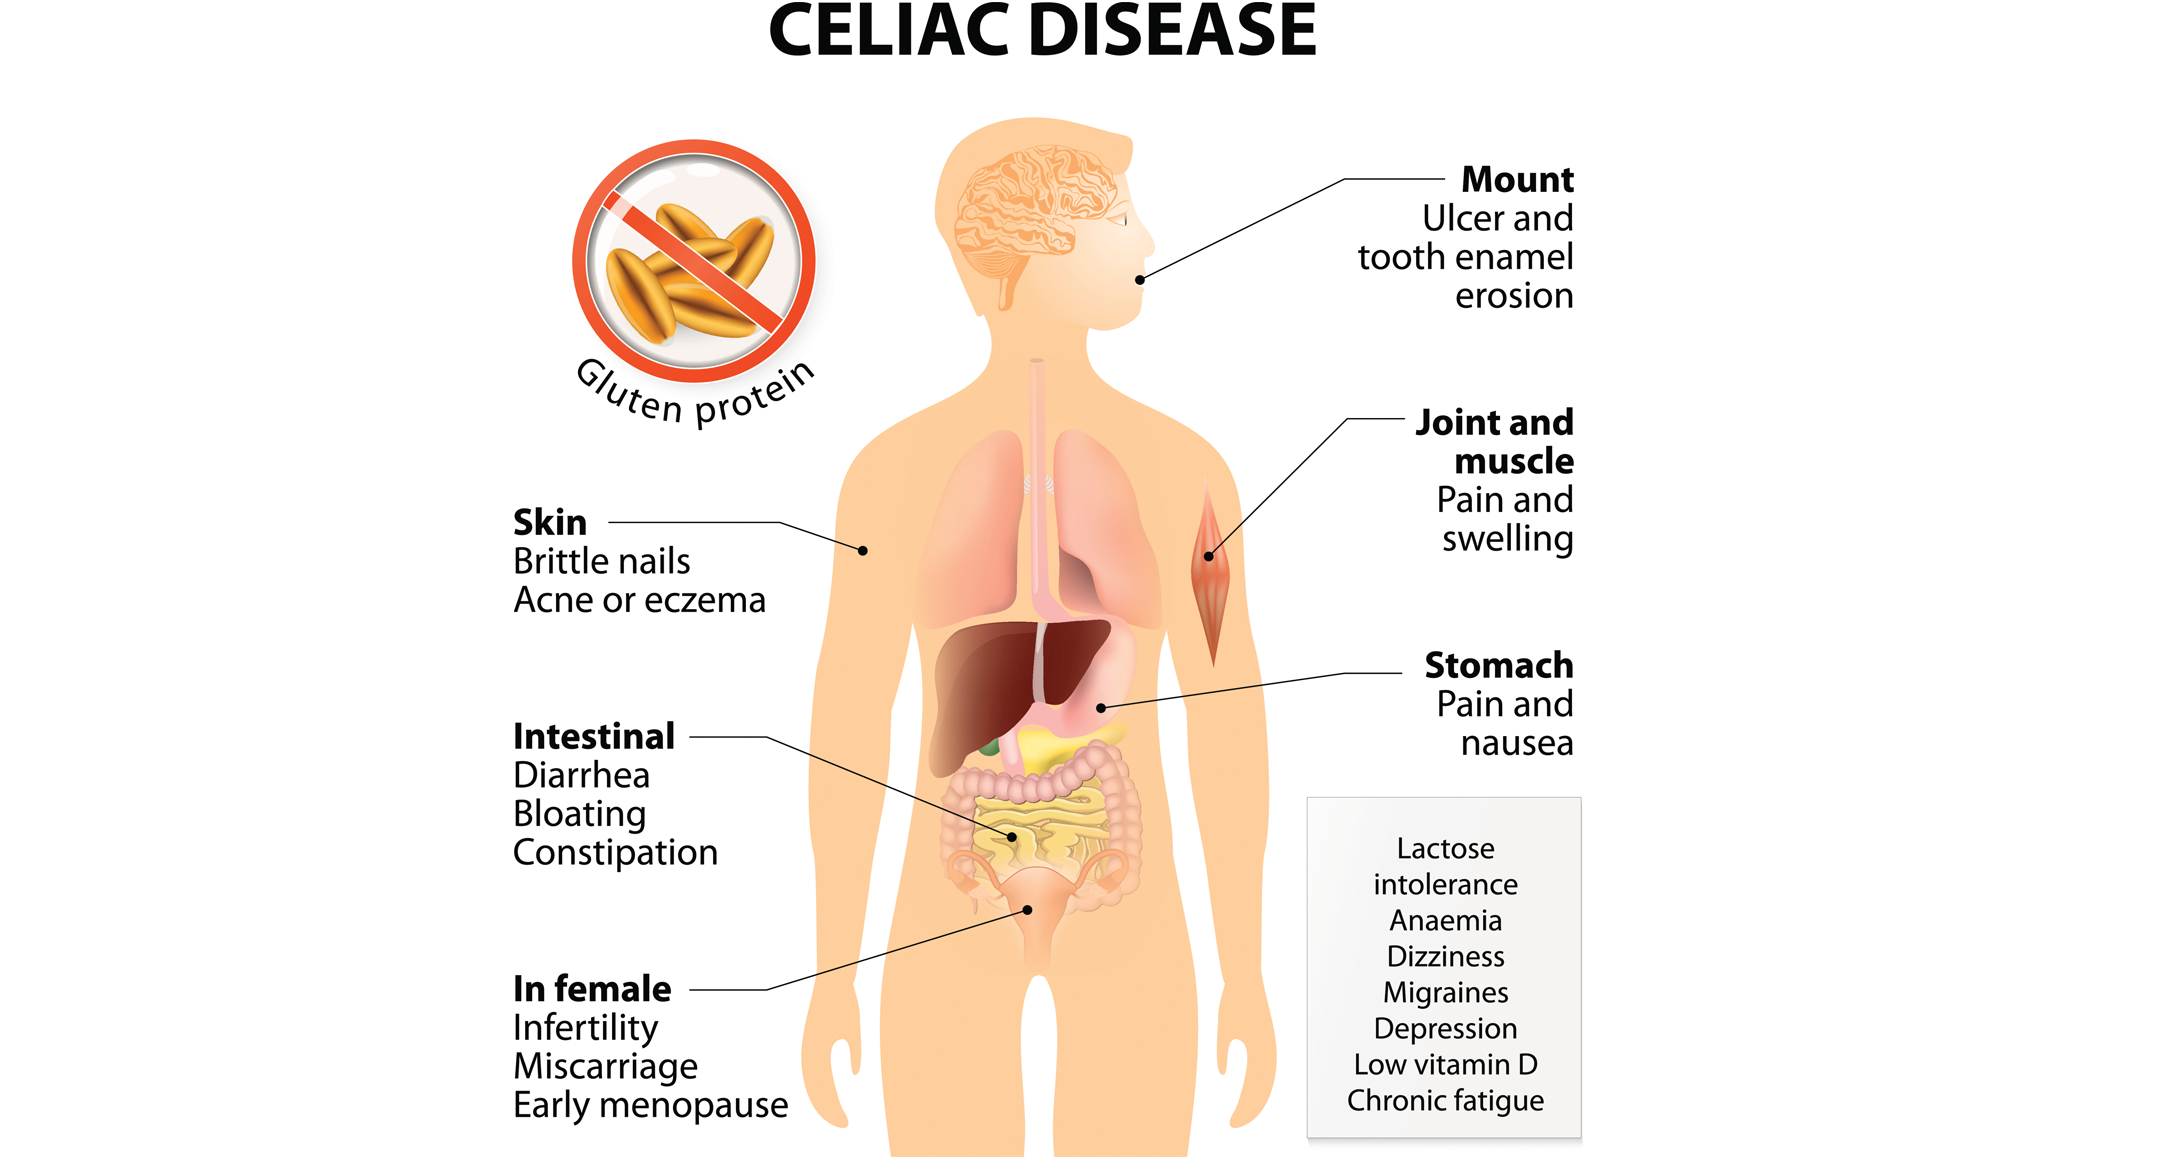 the gut microbiota influences celiac disease  thirty three percent of people have a gene that predisposes them to celiac disease (cd), while only two to five percent of the population will receive a